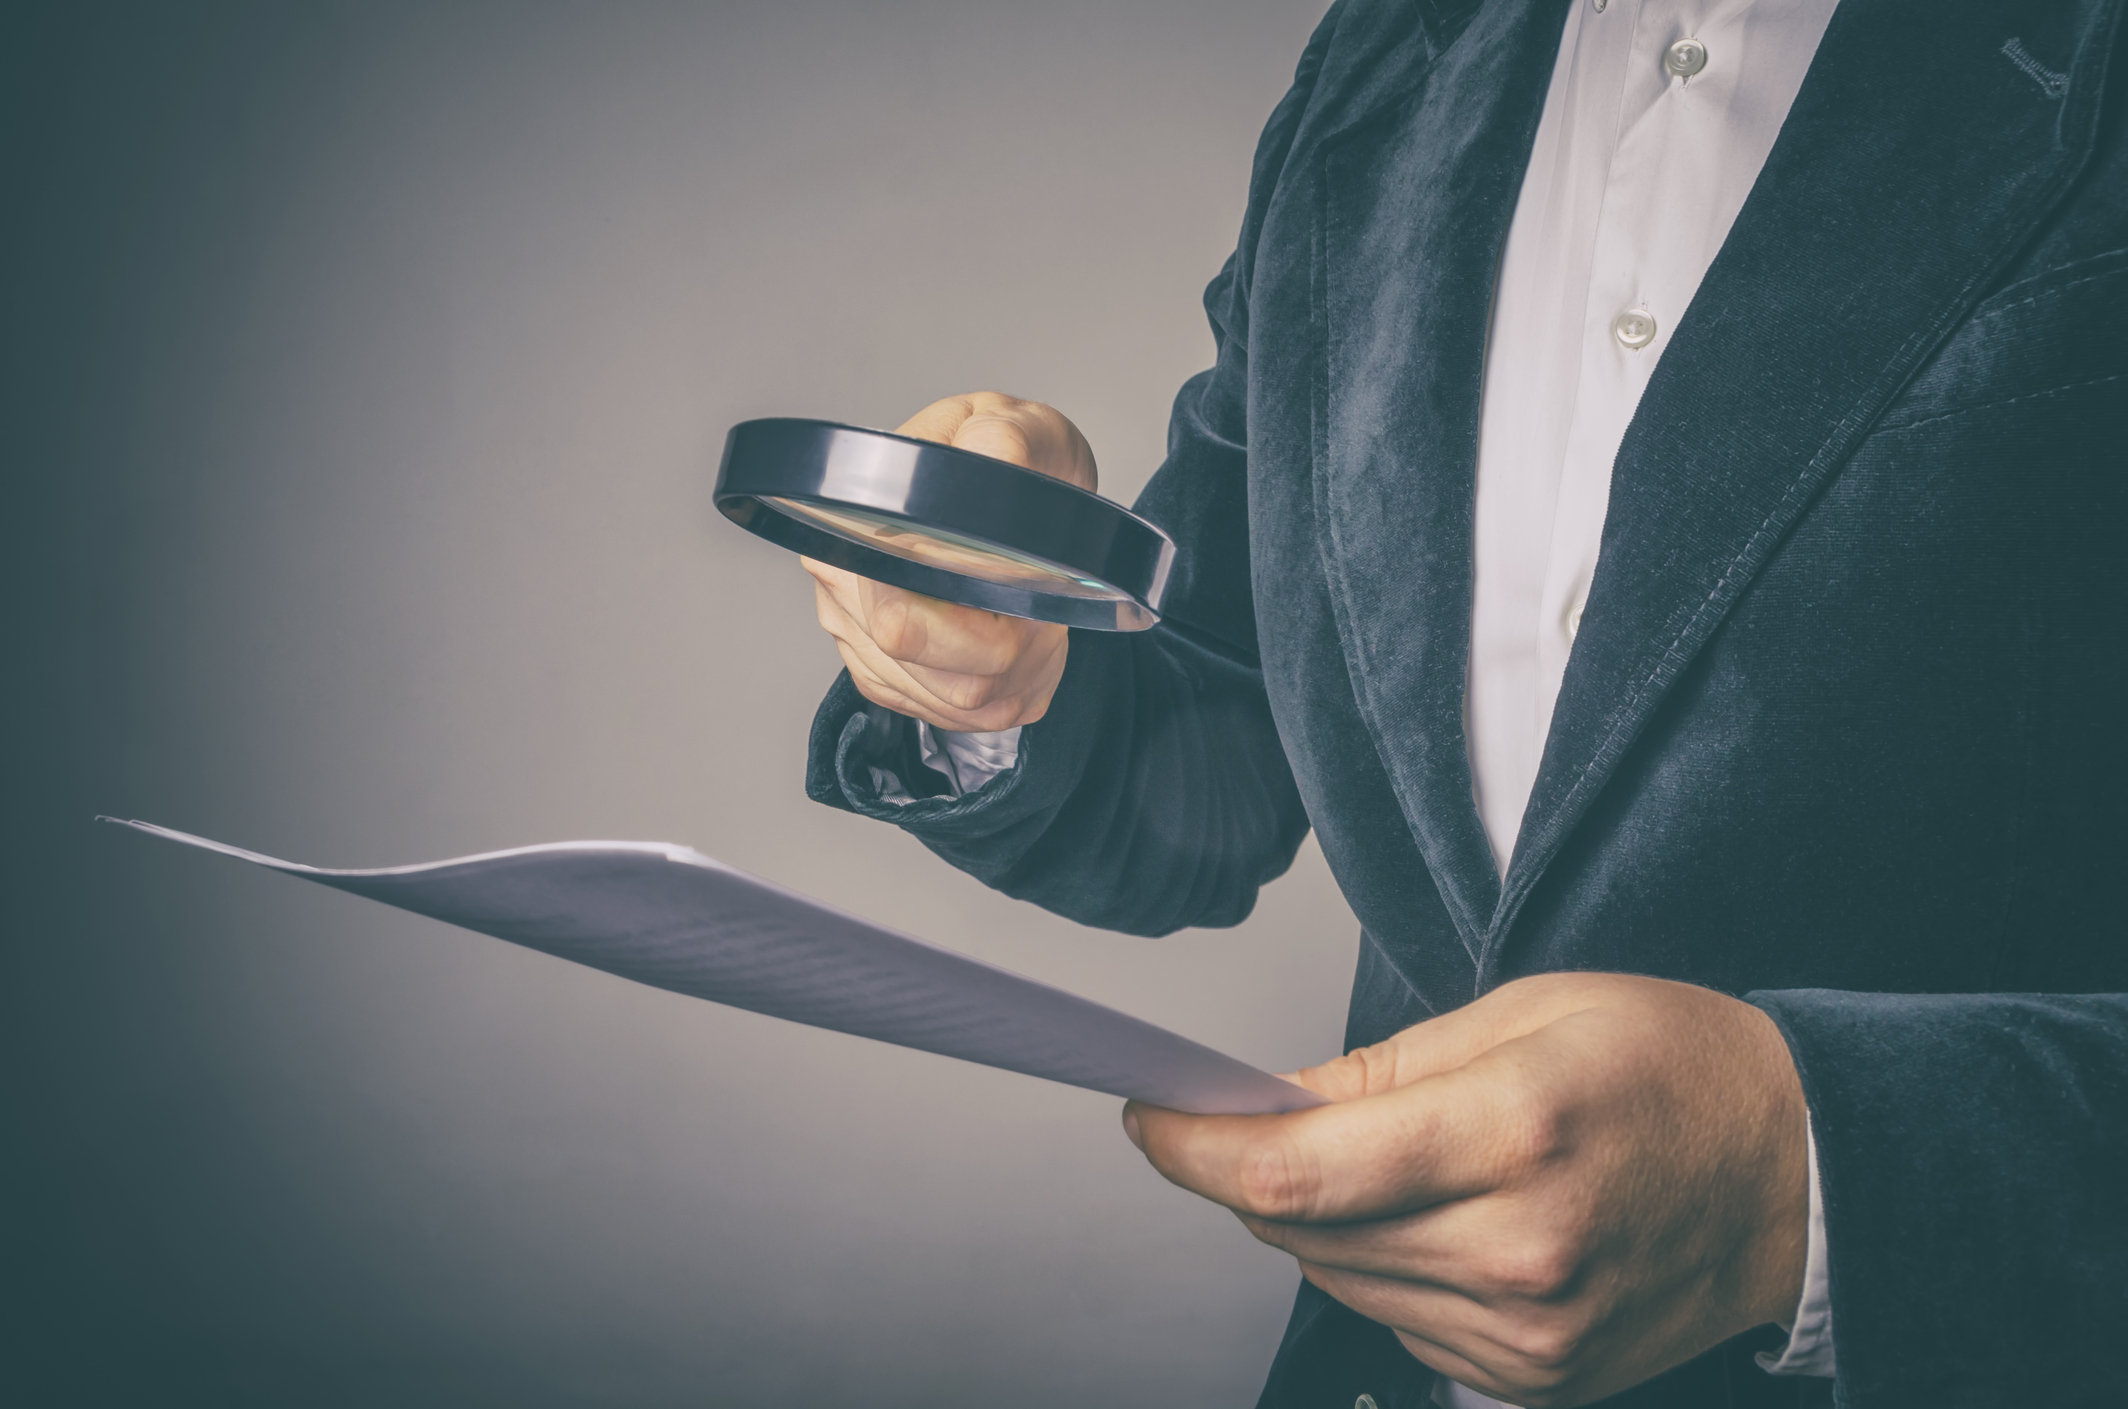 Image of a person holding a document in their hand with a magnifying glass